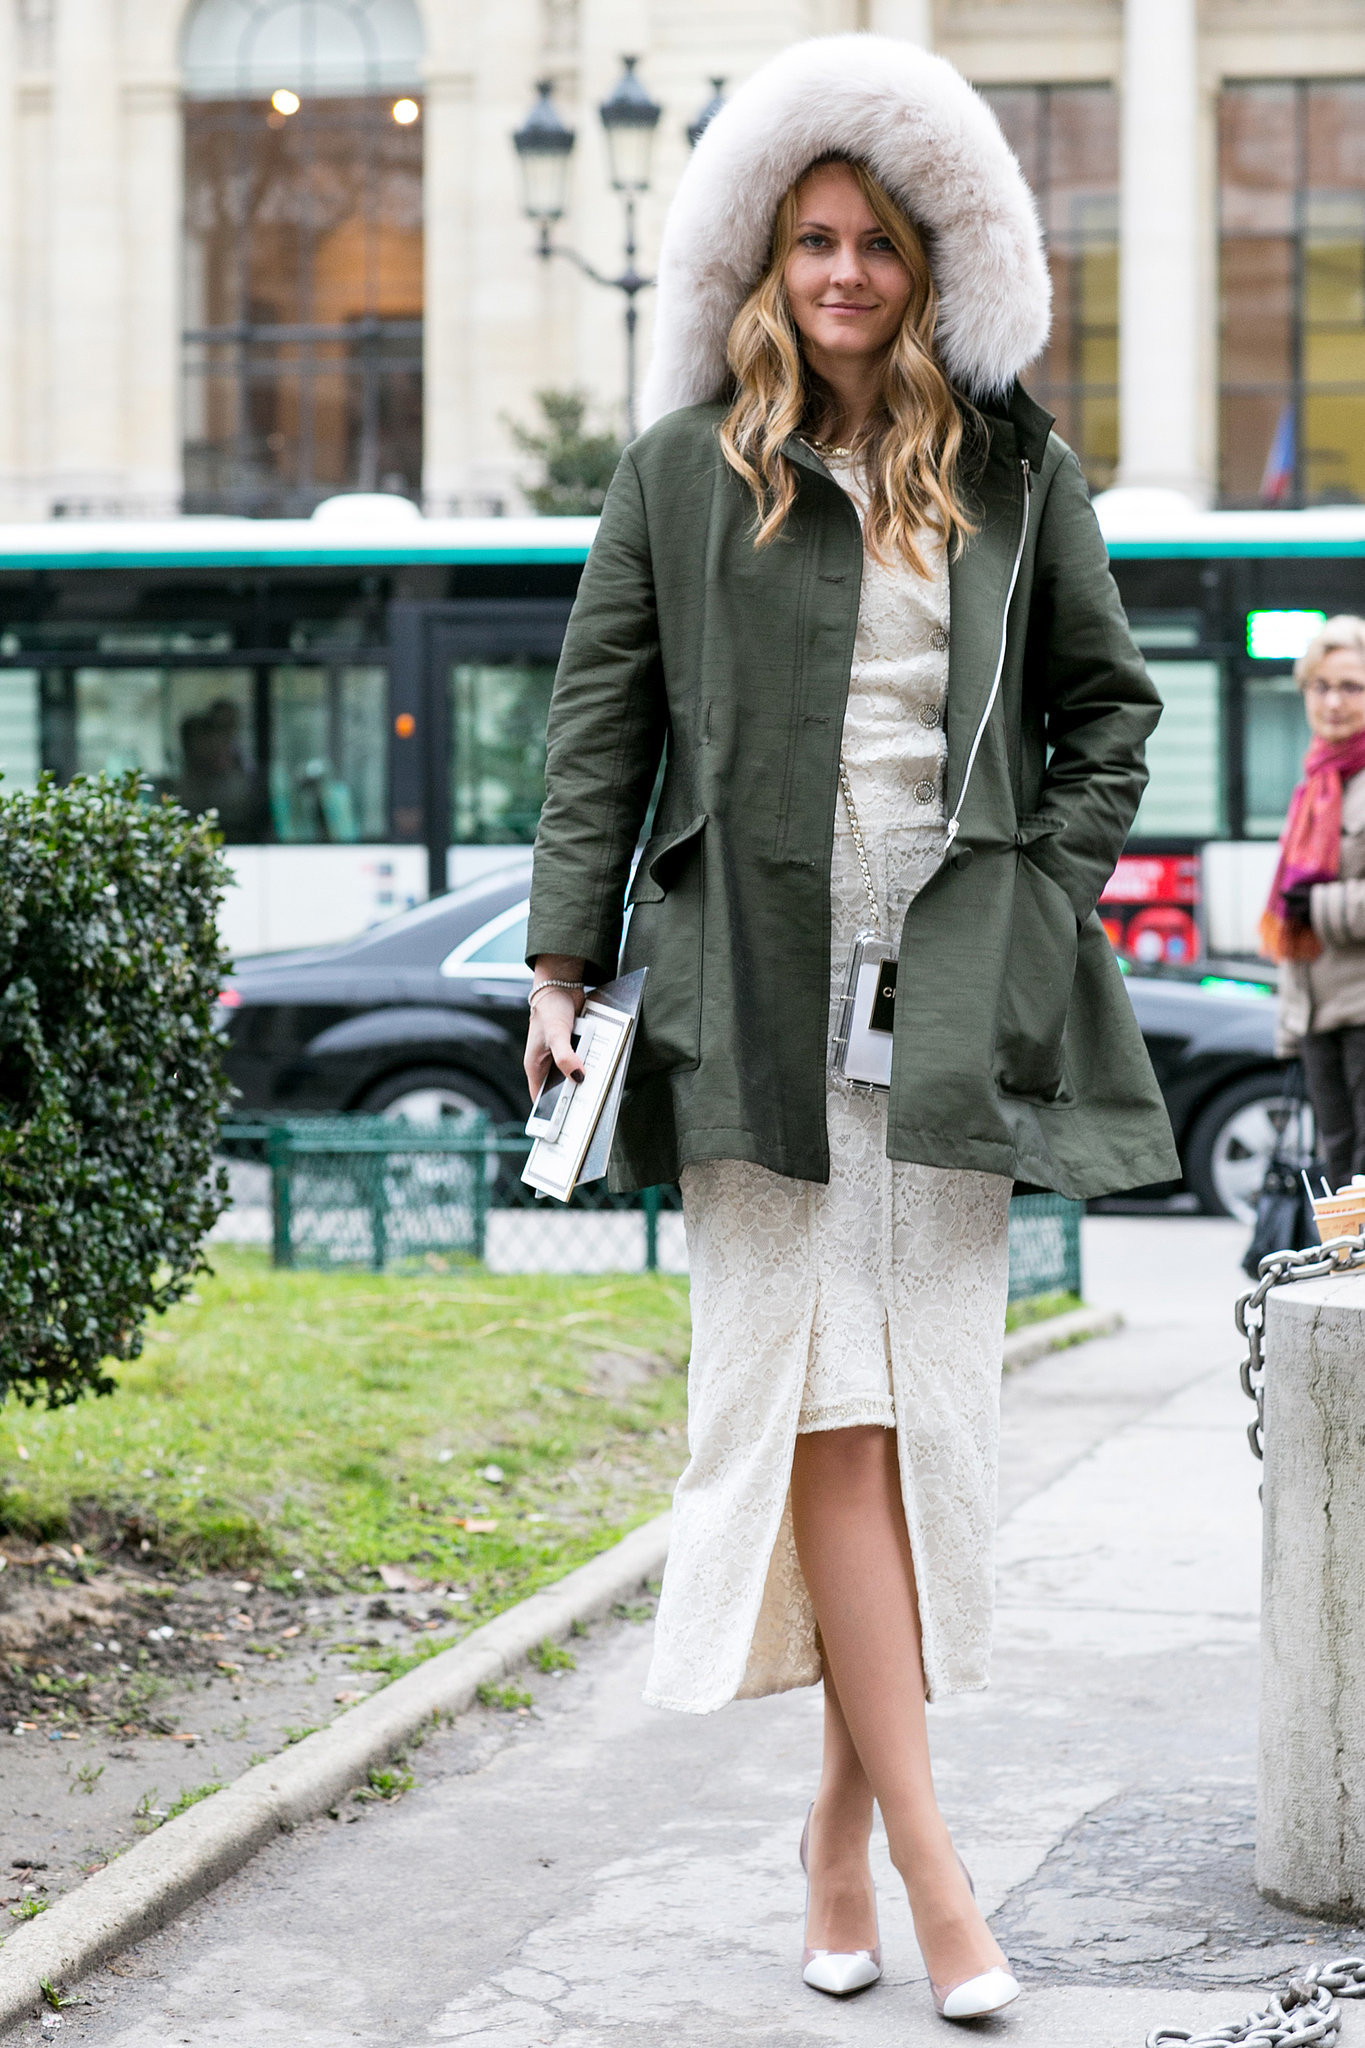 There's nothing we love more than a tough-meets-feminine mix-up like an anorak to warm up a pretty white dress.